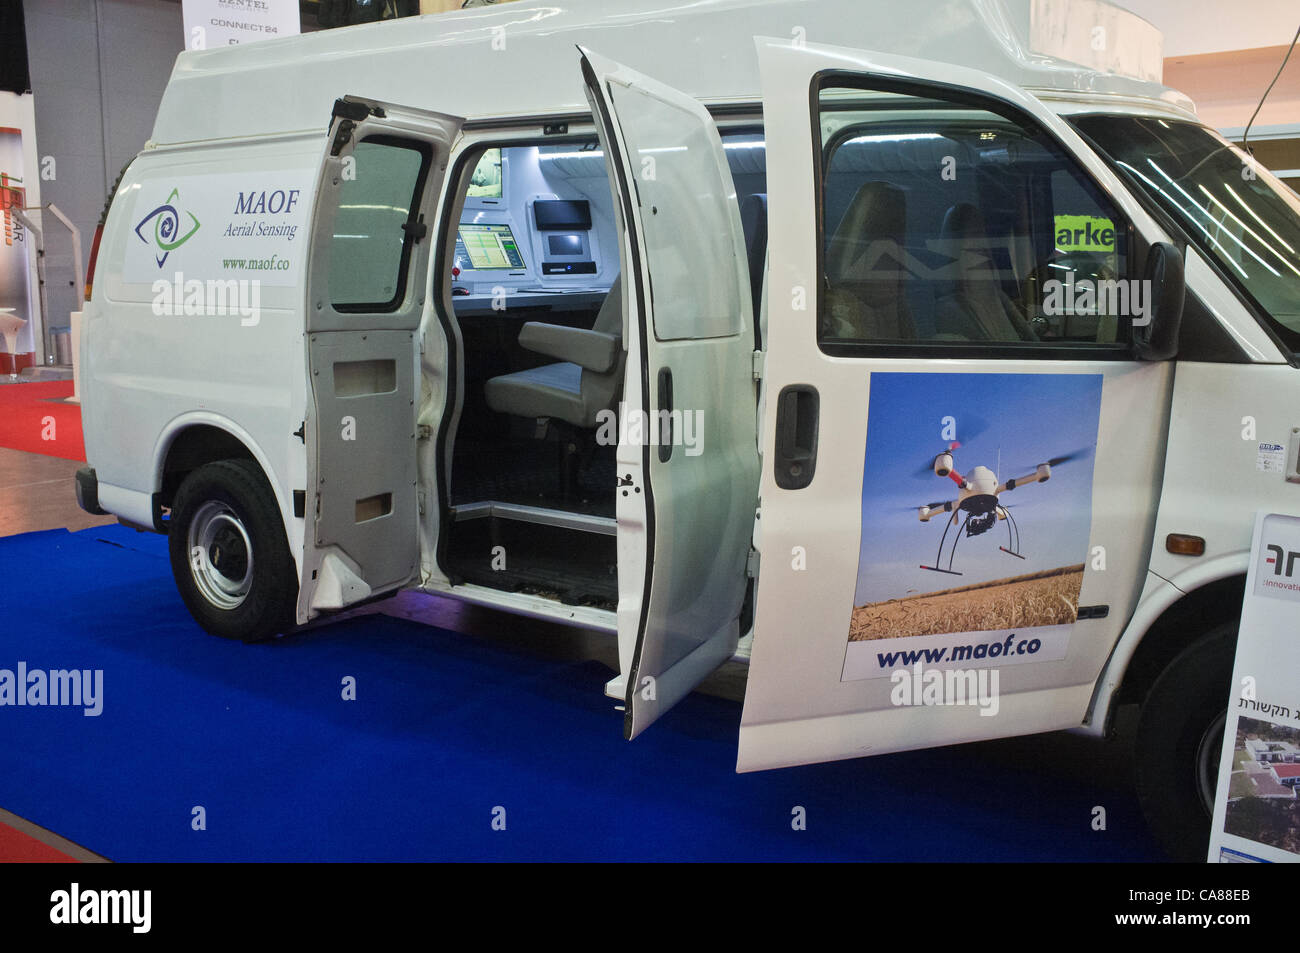 Maof Aerial Sensing displays a command and control van for unmaned drones carrying video surveillance equipment Stock Photo